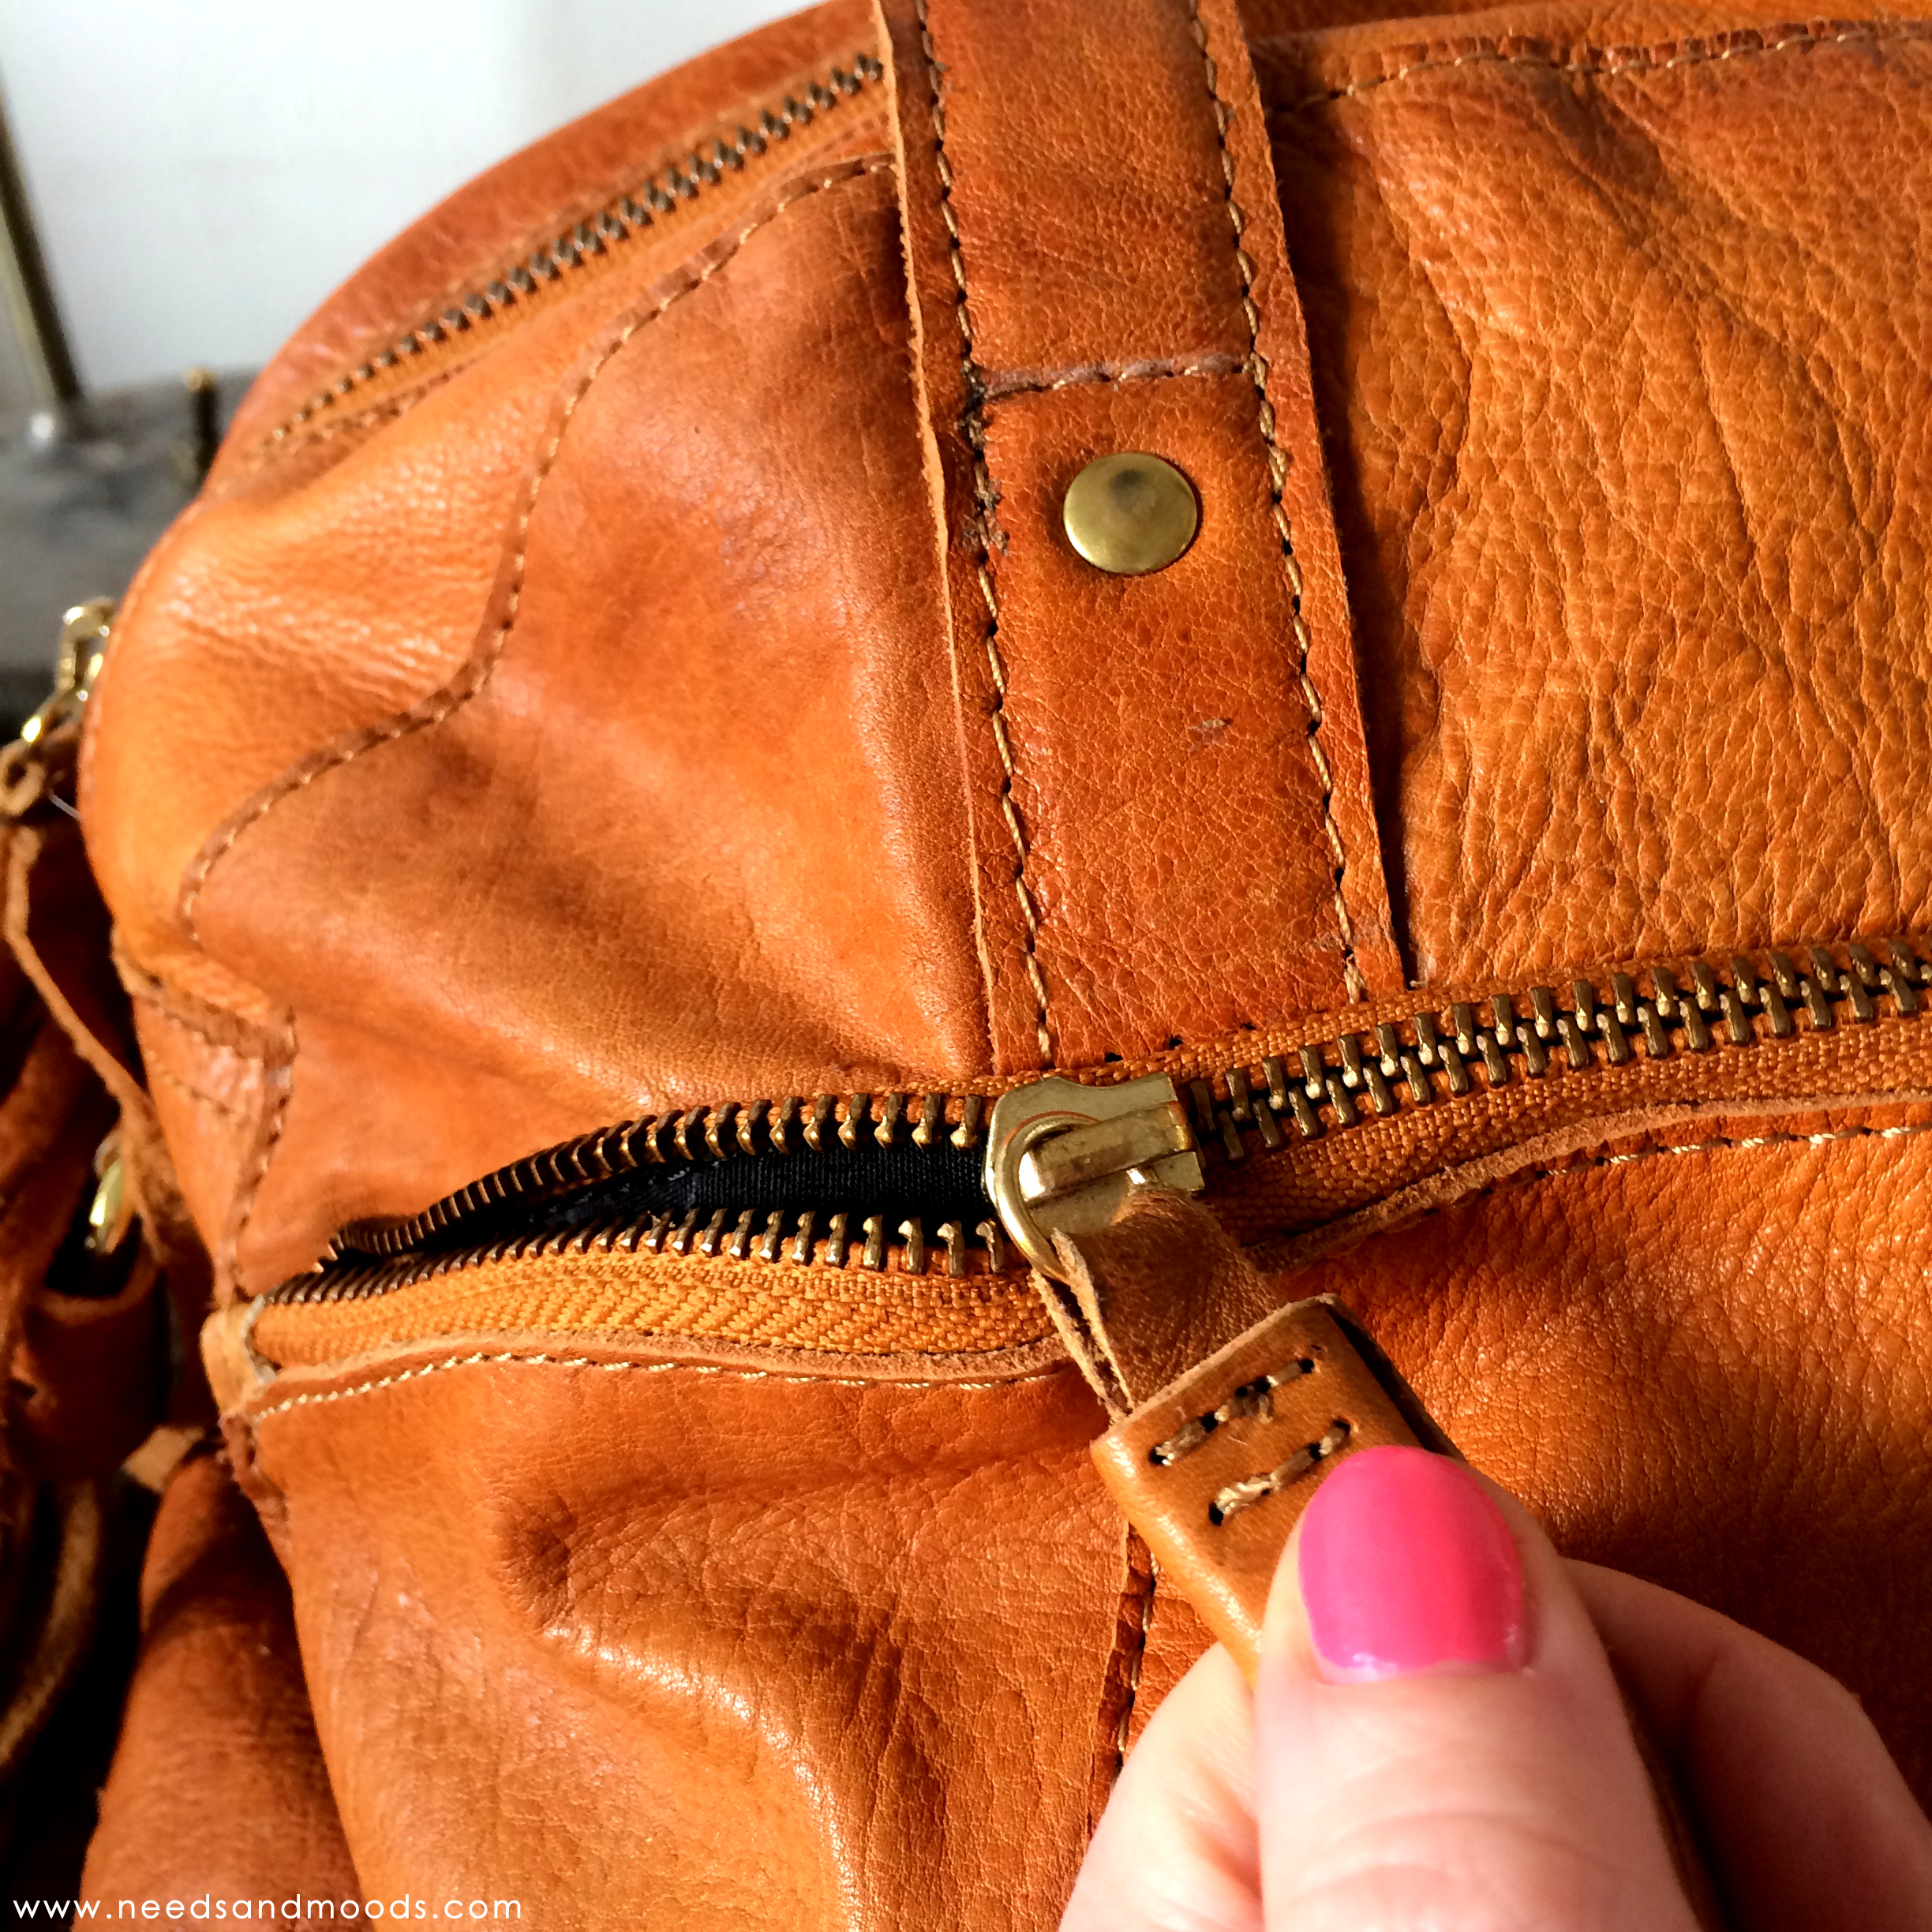 Leather Hand Bag Pieces - Vintage Style